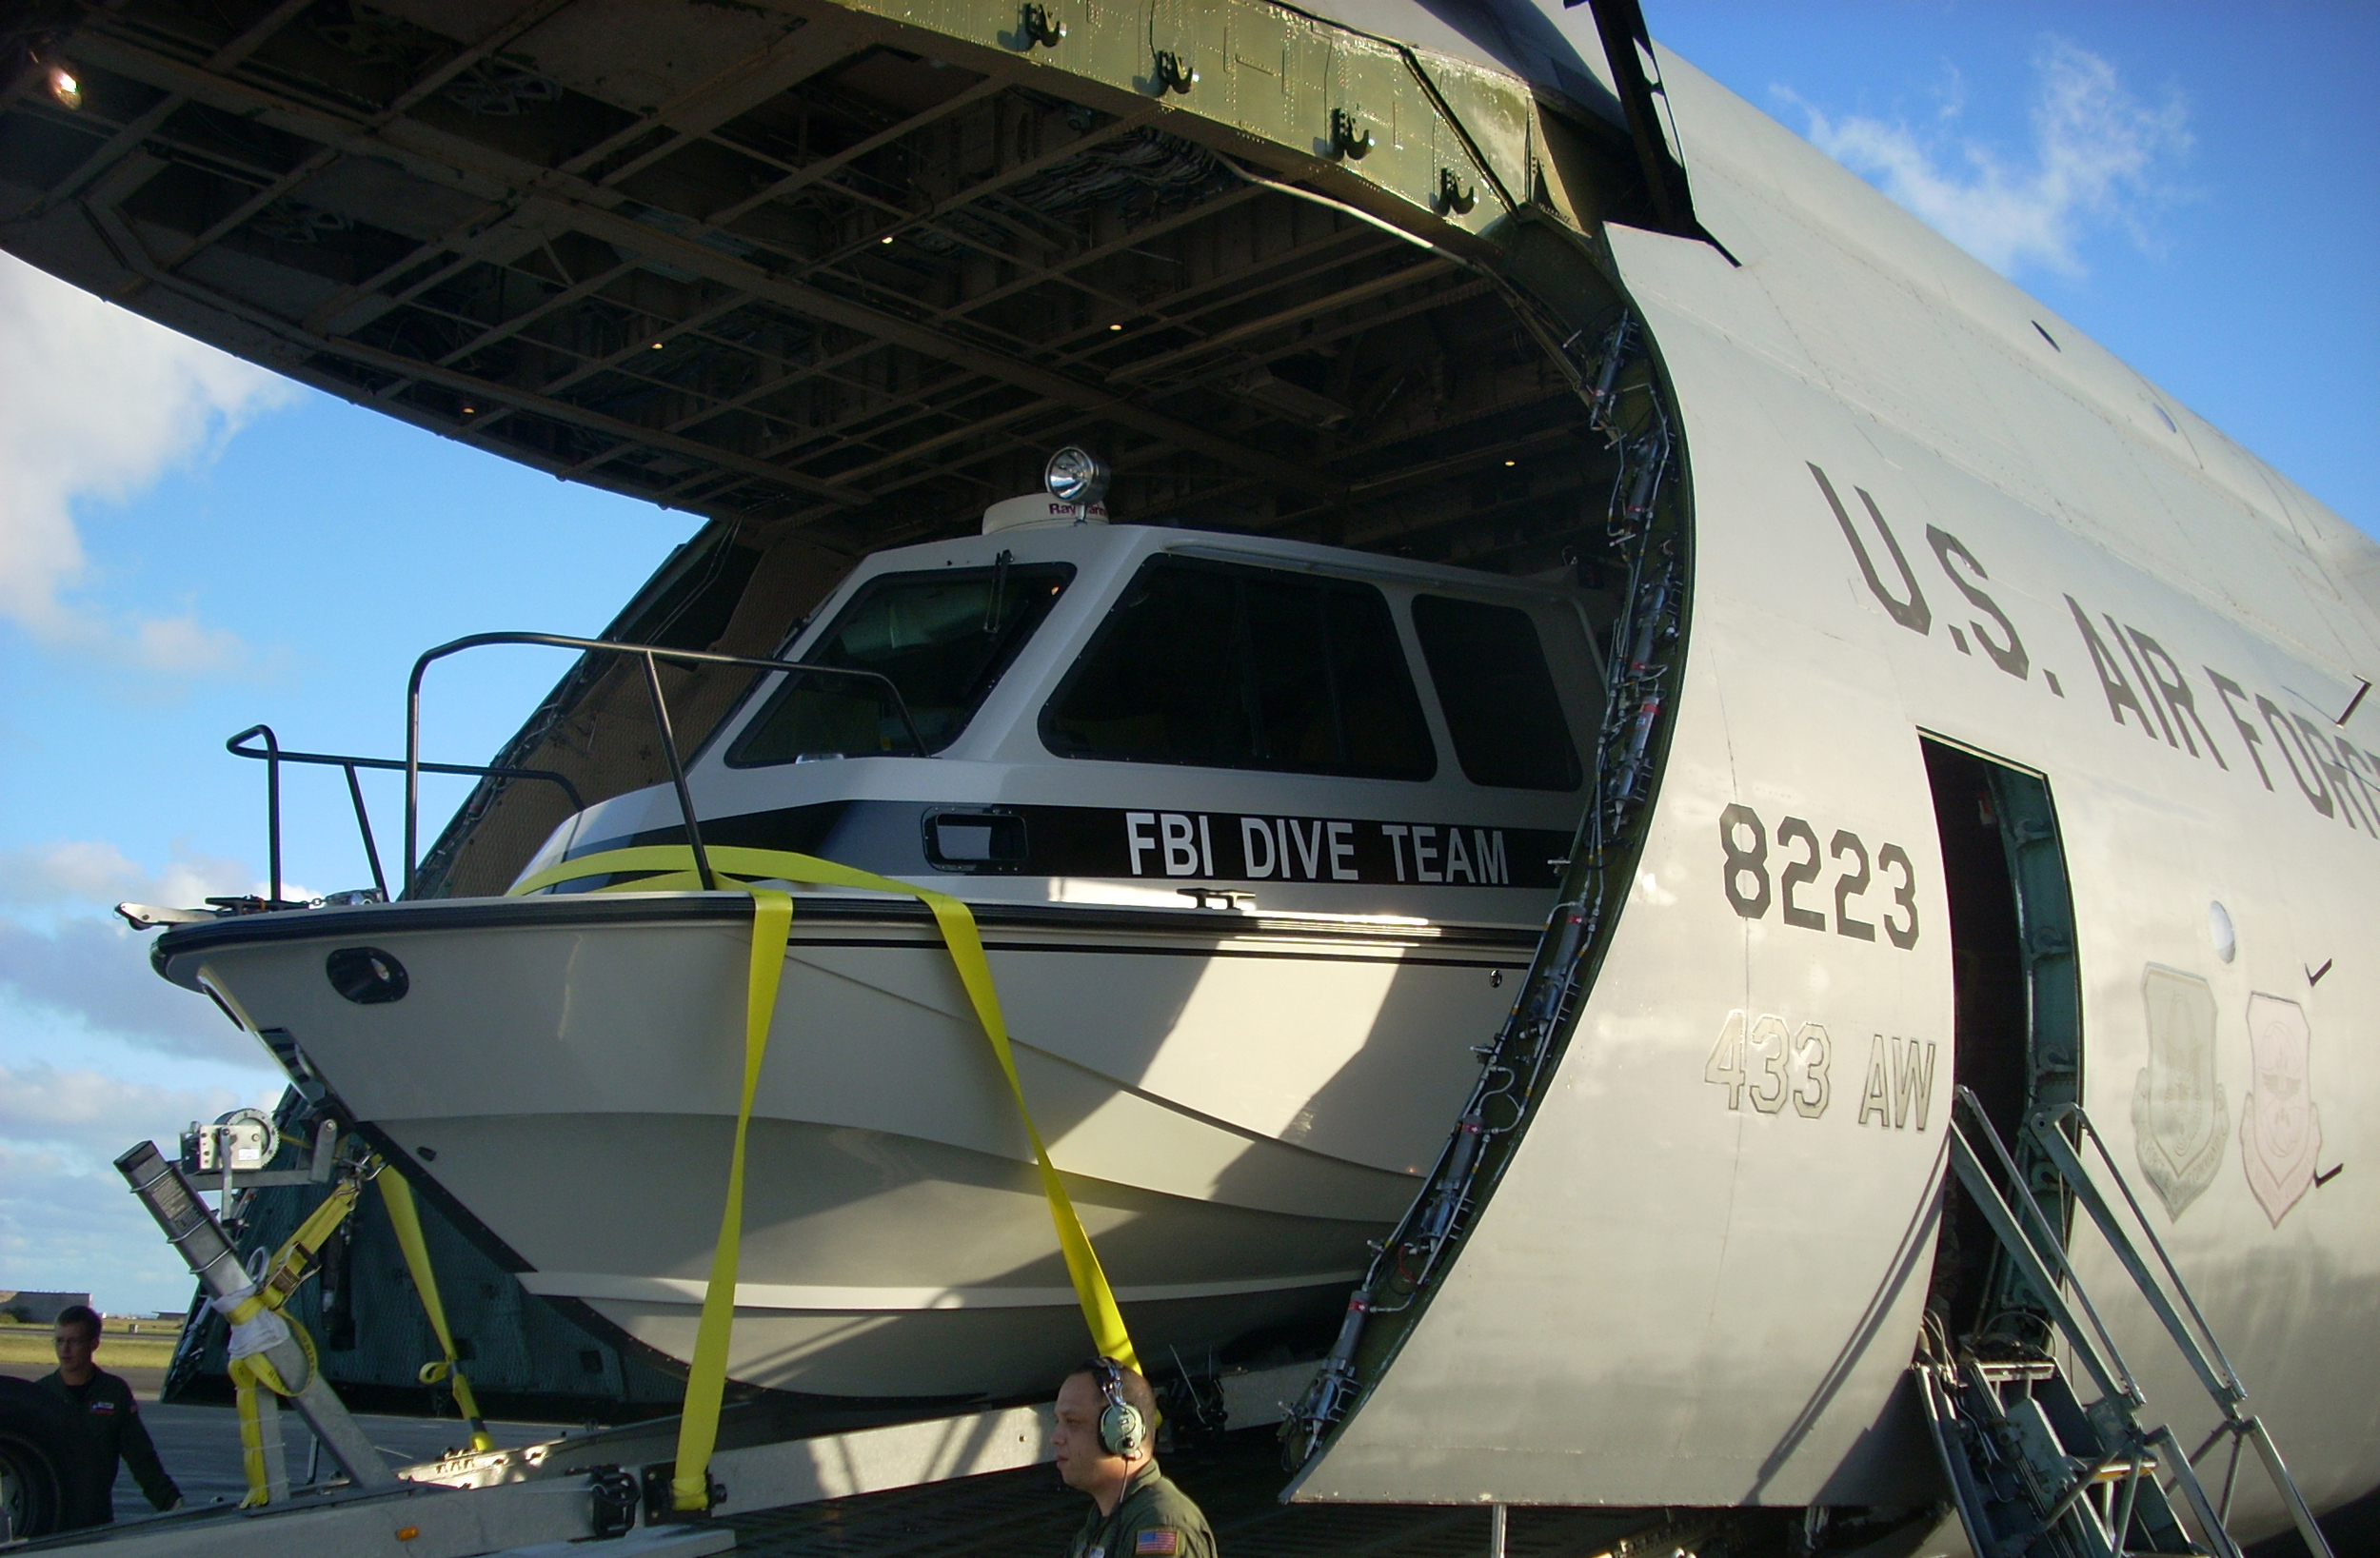 FBI Dive Team Boat (courtesy of FBI)